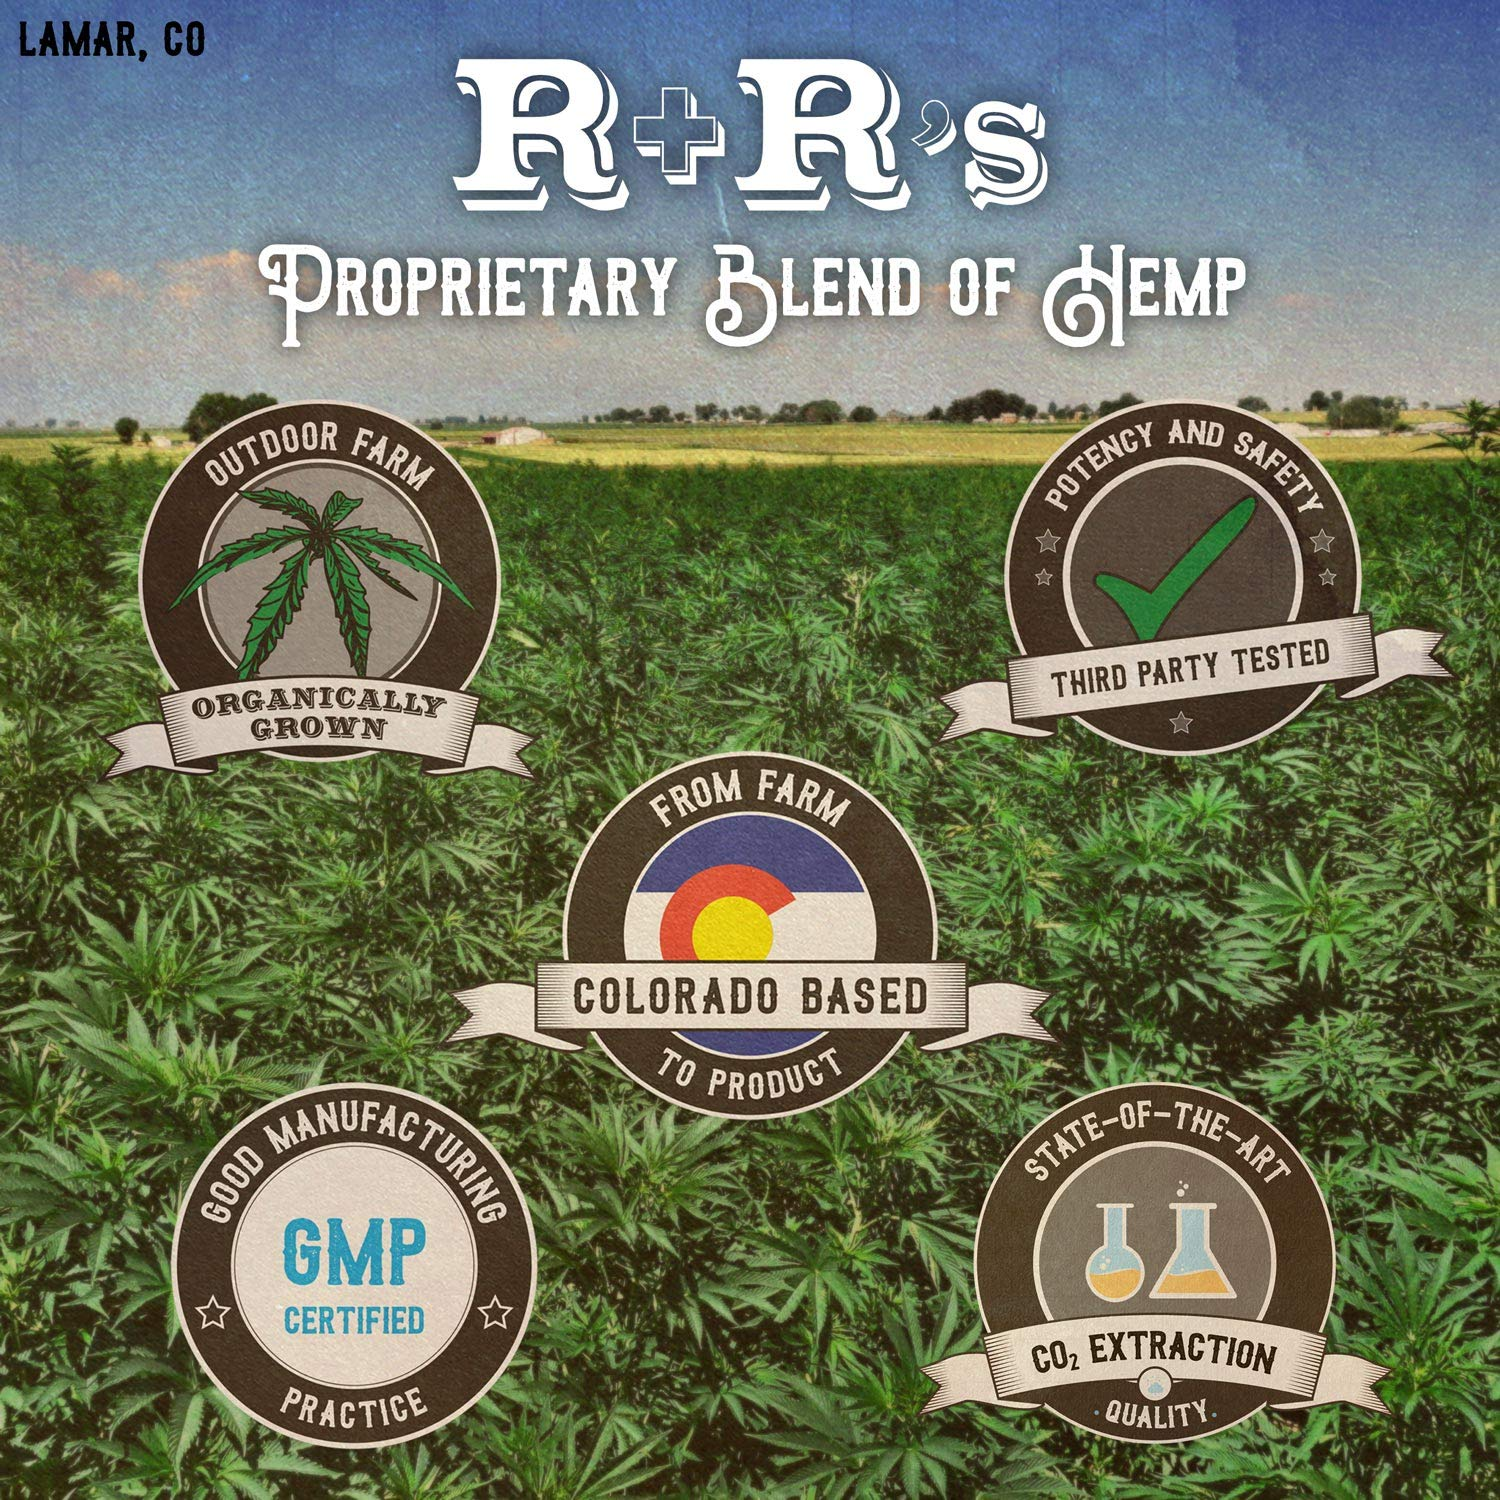 Hemp Oil 1000mg :: Hemp Oil for Pain :: Stress Relief, Mood Support, Healthy Sleep Patterns, Skin Care (1000mg, 36mg per Serving x 28 Servings) : R+R Medicinals by R+R Medicinals (Image #6)